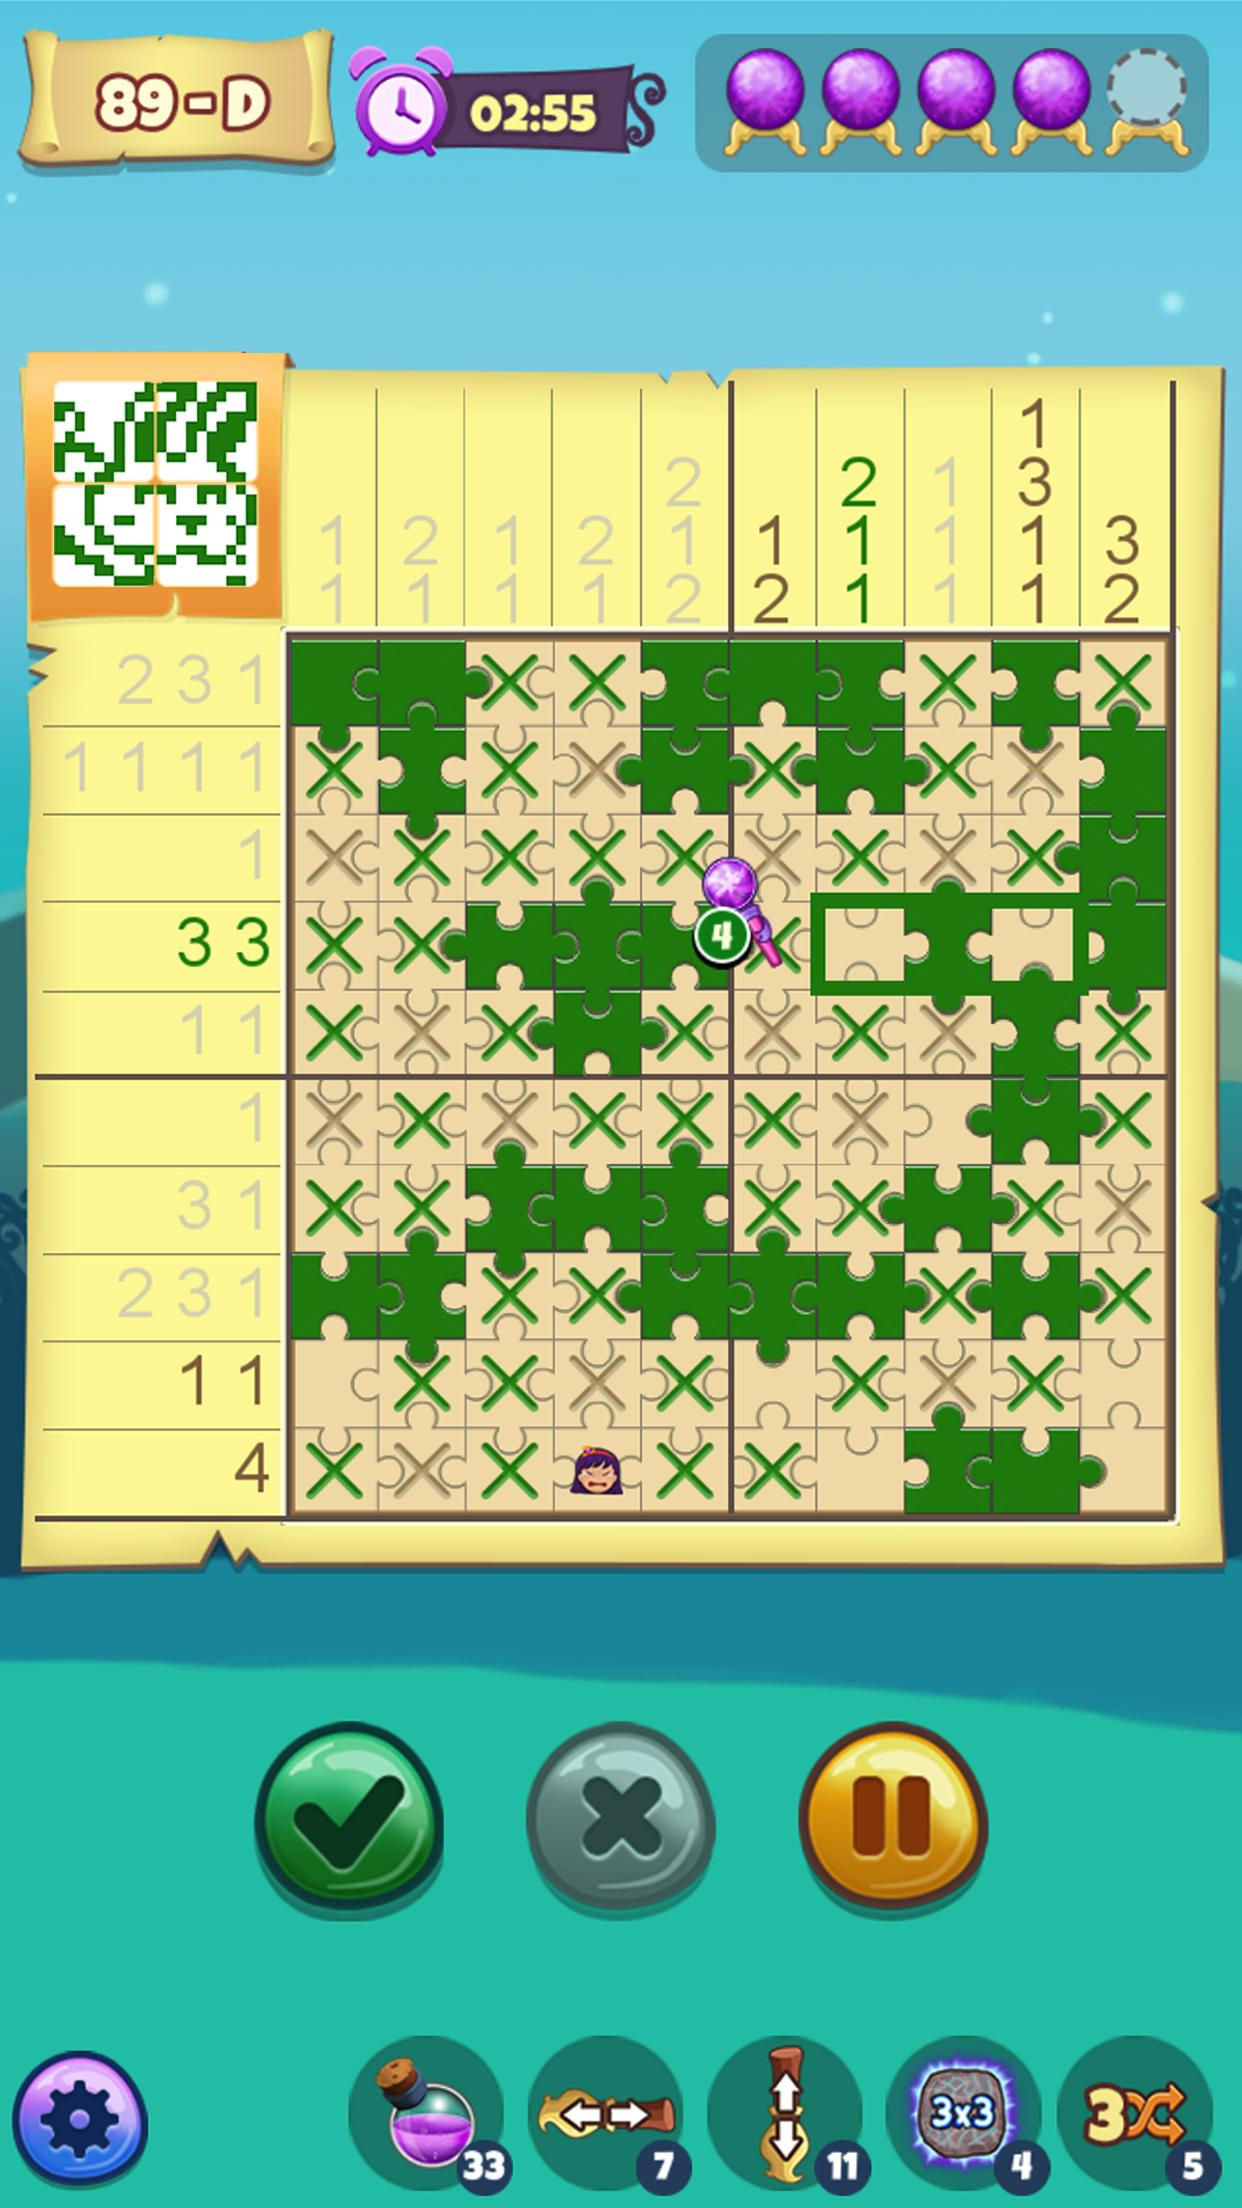 The Mystic Puzzland - Griddlers & Nonogram Puzzles 1.0.26 Screenshot 1